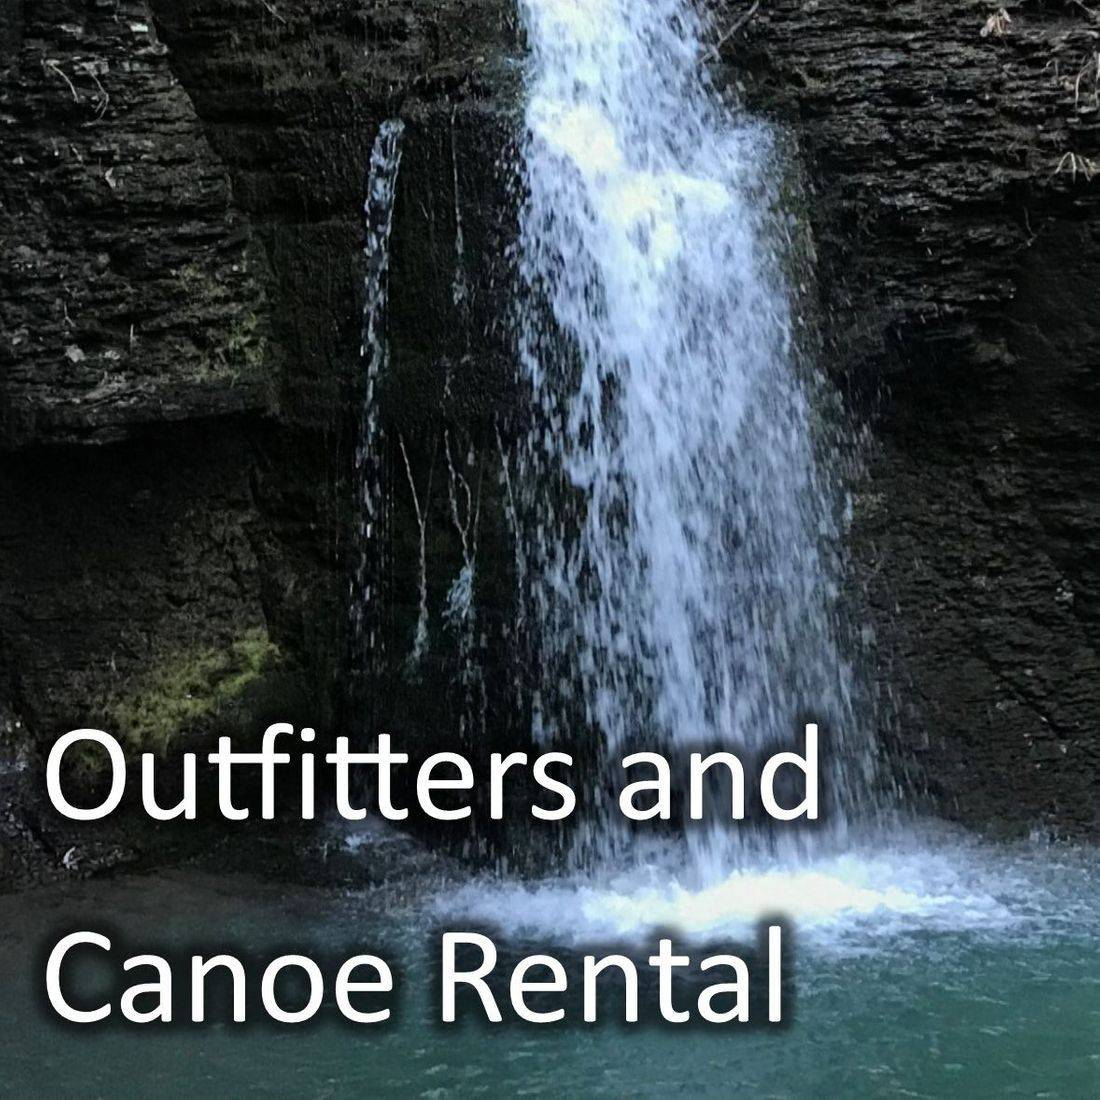 Outfitters and Canoe Rental and Camping